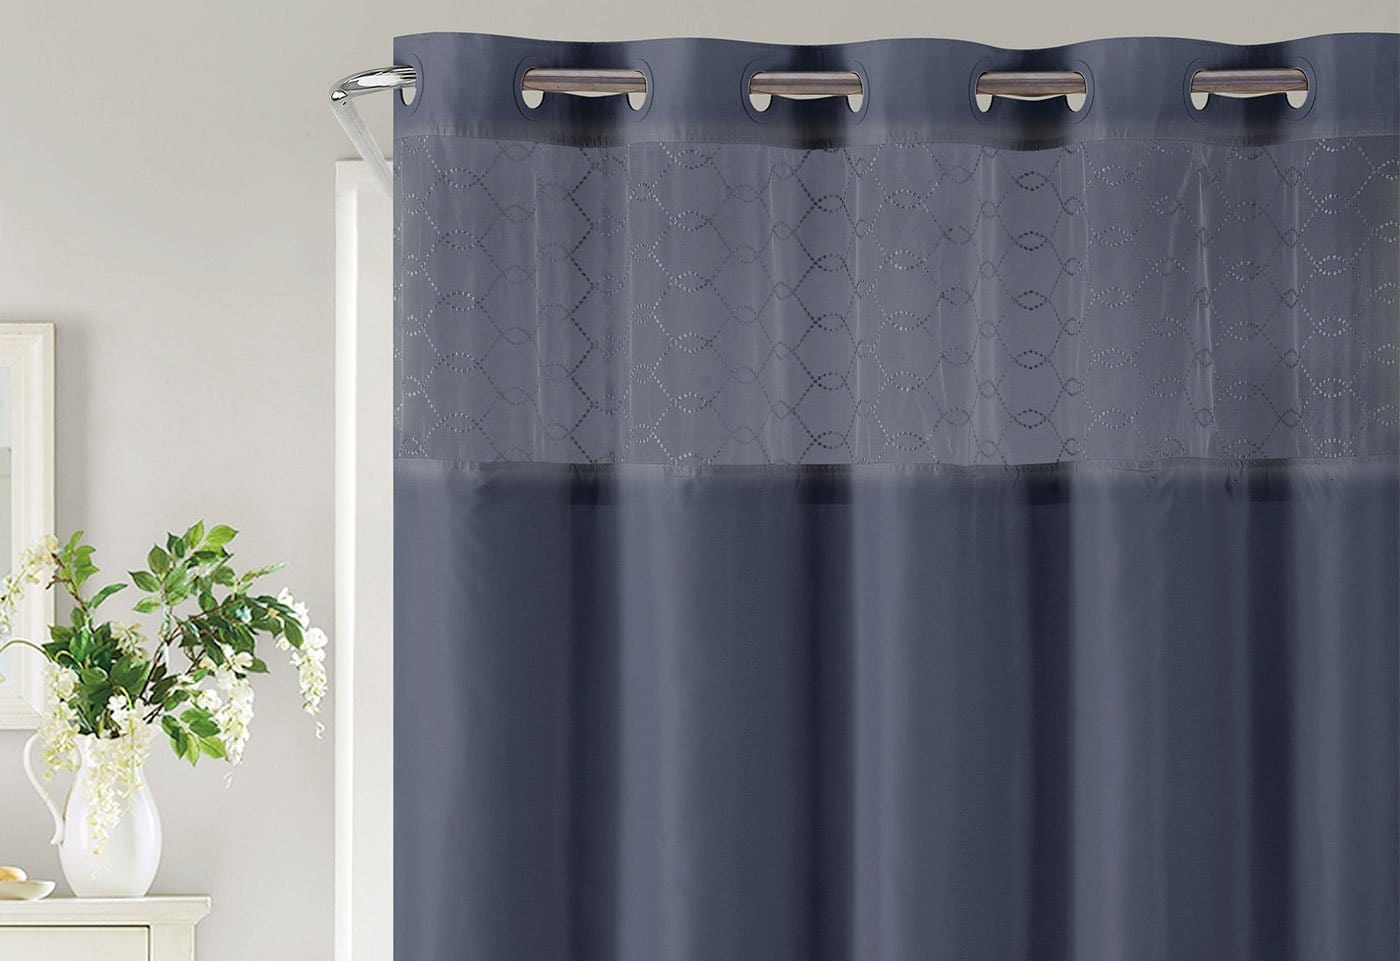 Hookless® Downtown Soho Shower Curtain Includes Snap On/Off Replaceable Liner - Indigo Blue